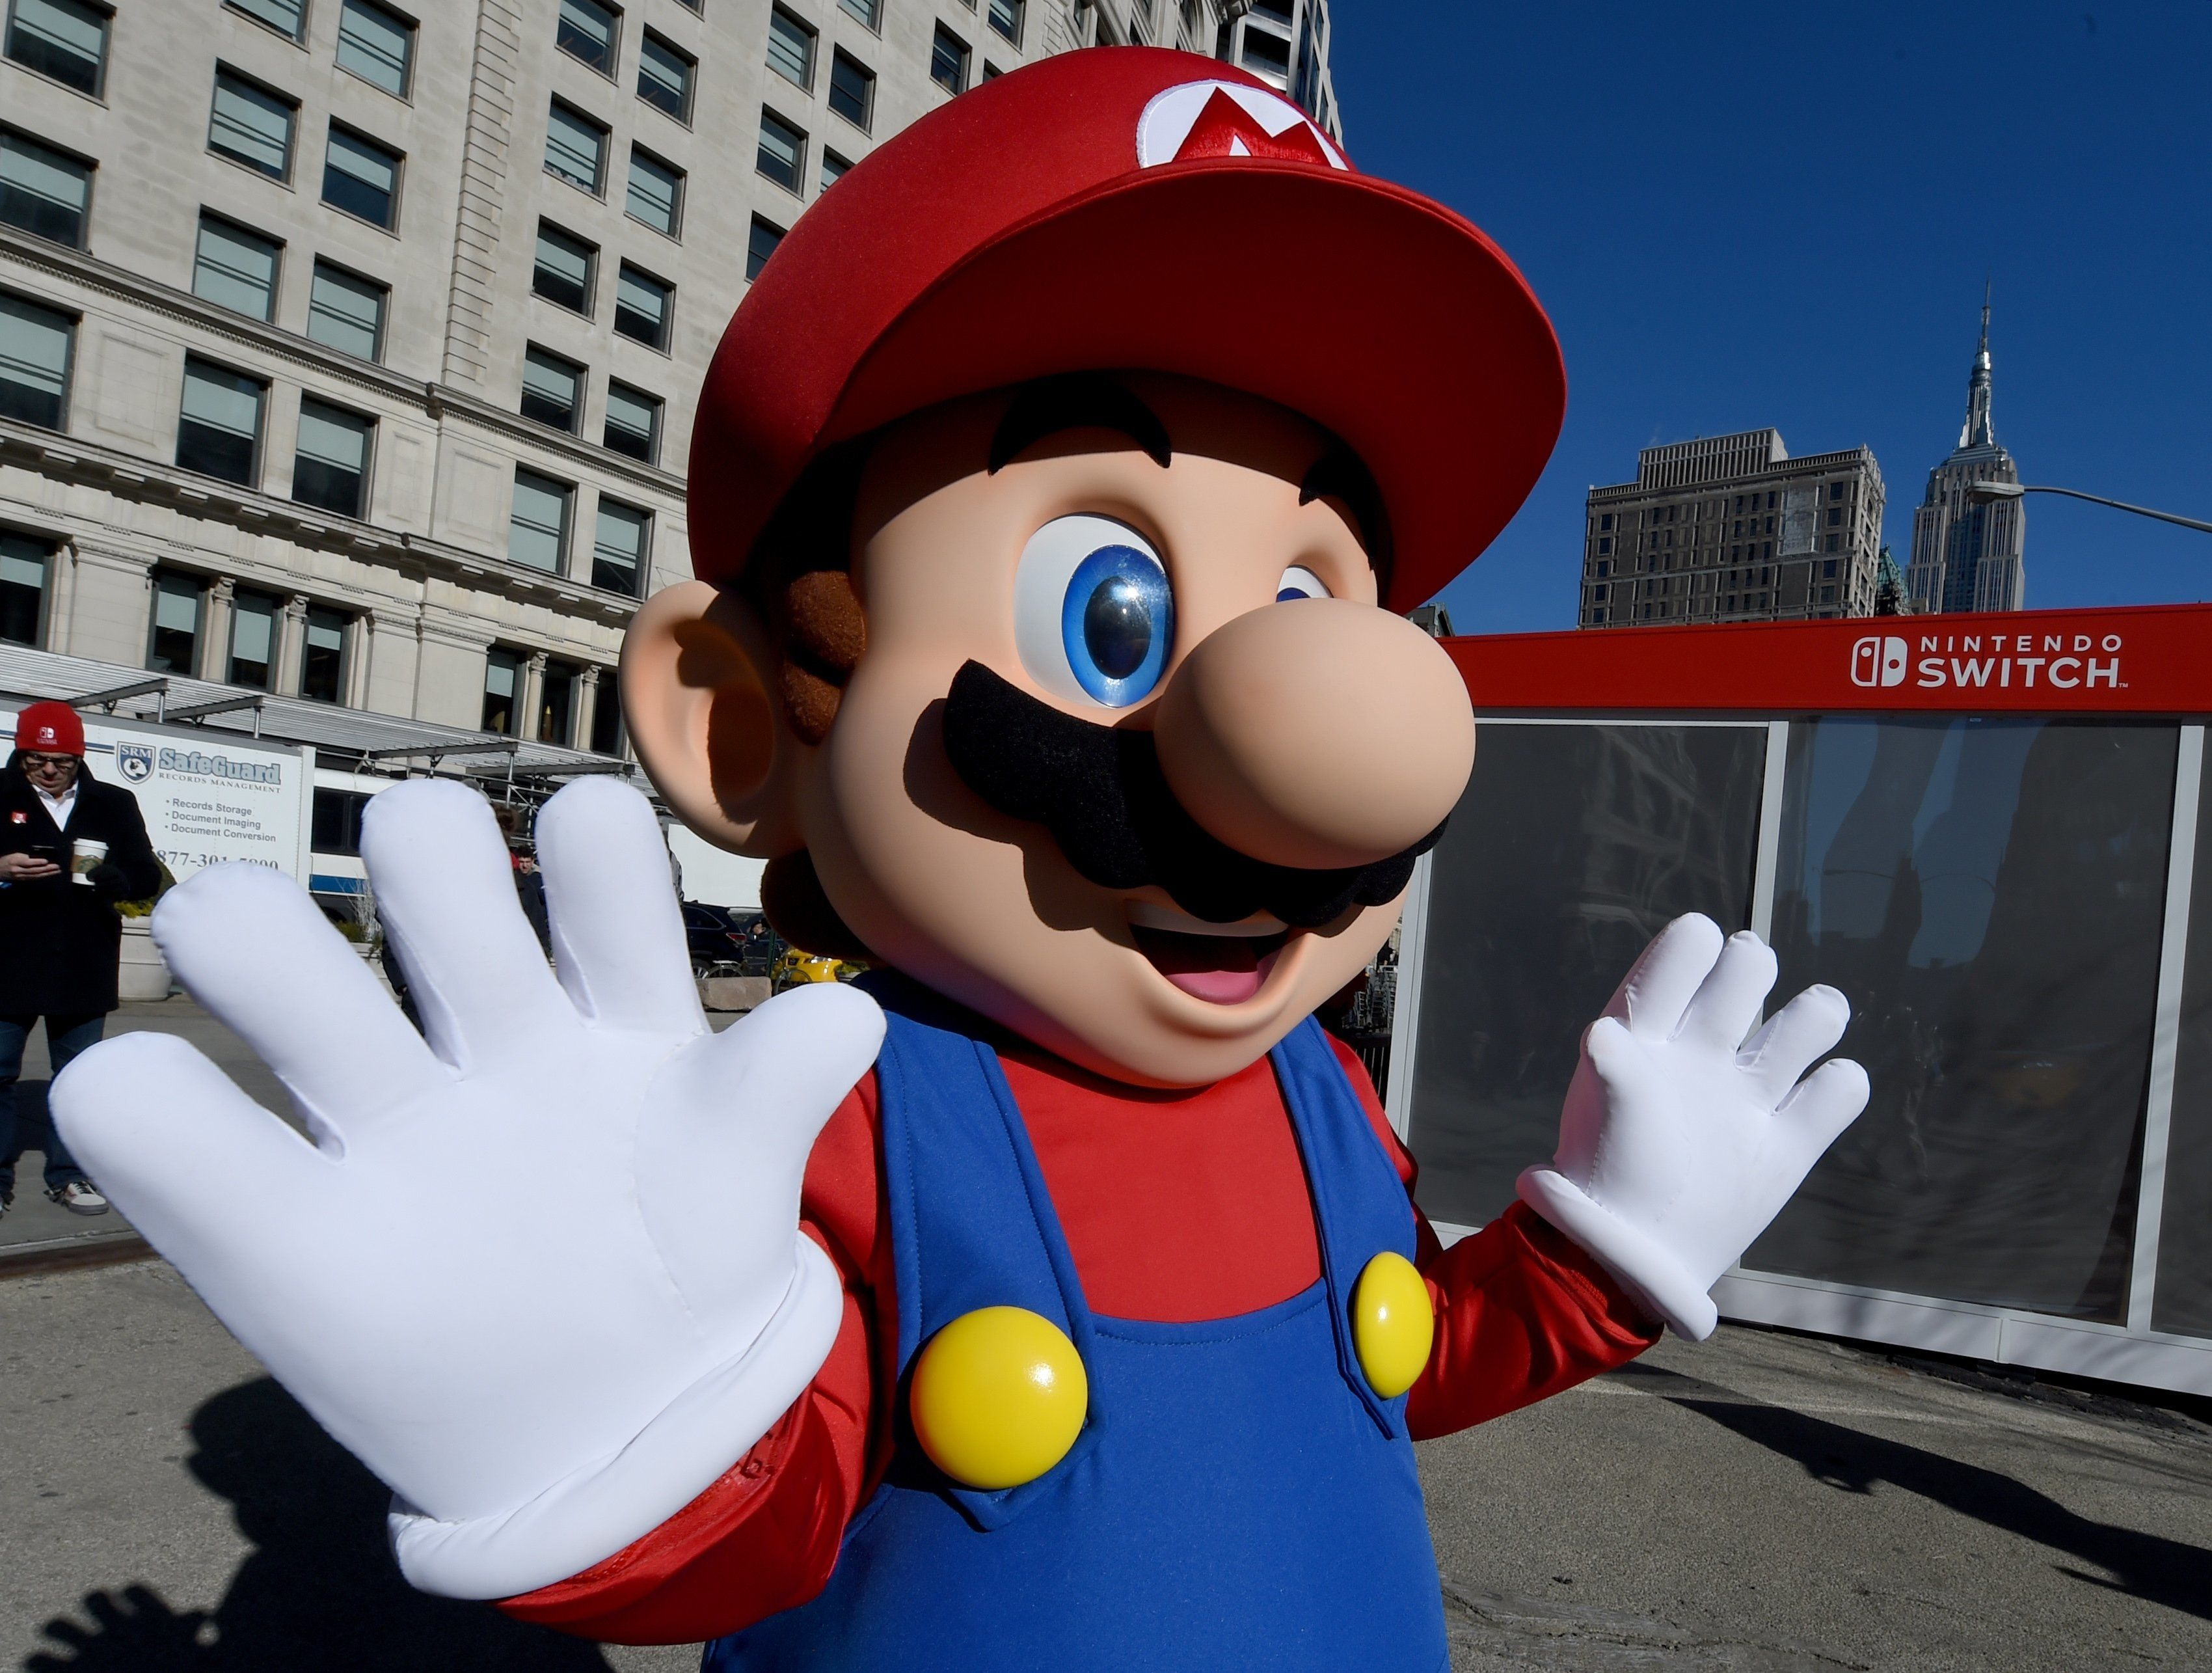 This Is What Super Mario Looks Like Without Hair, And People Are Freaked